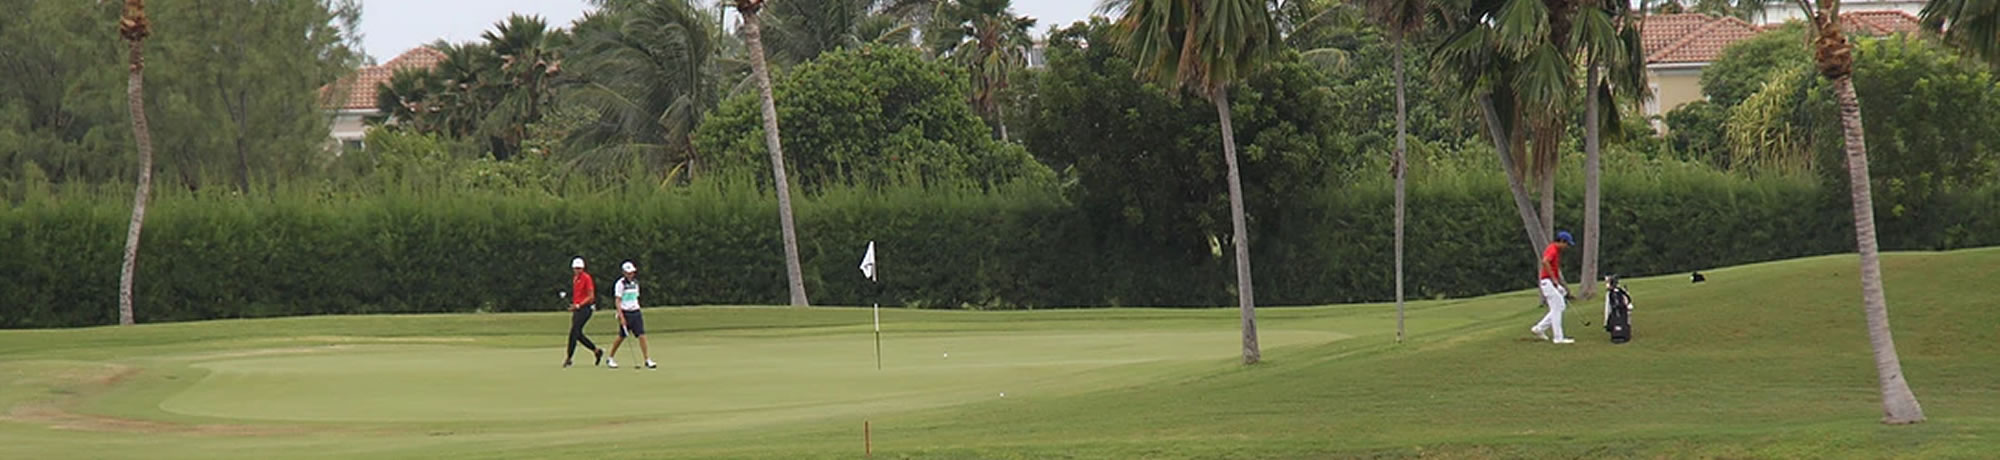 Cayman Islands Golf Association